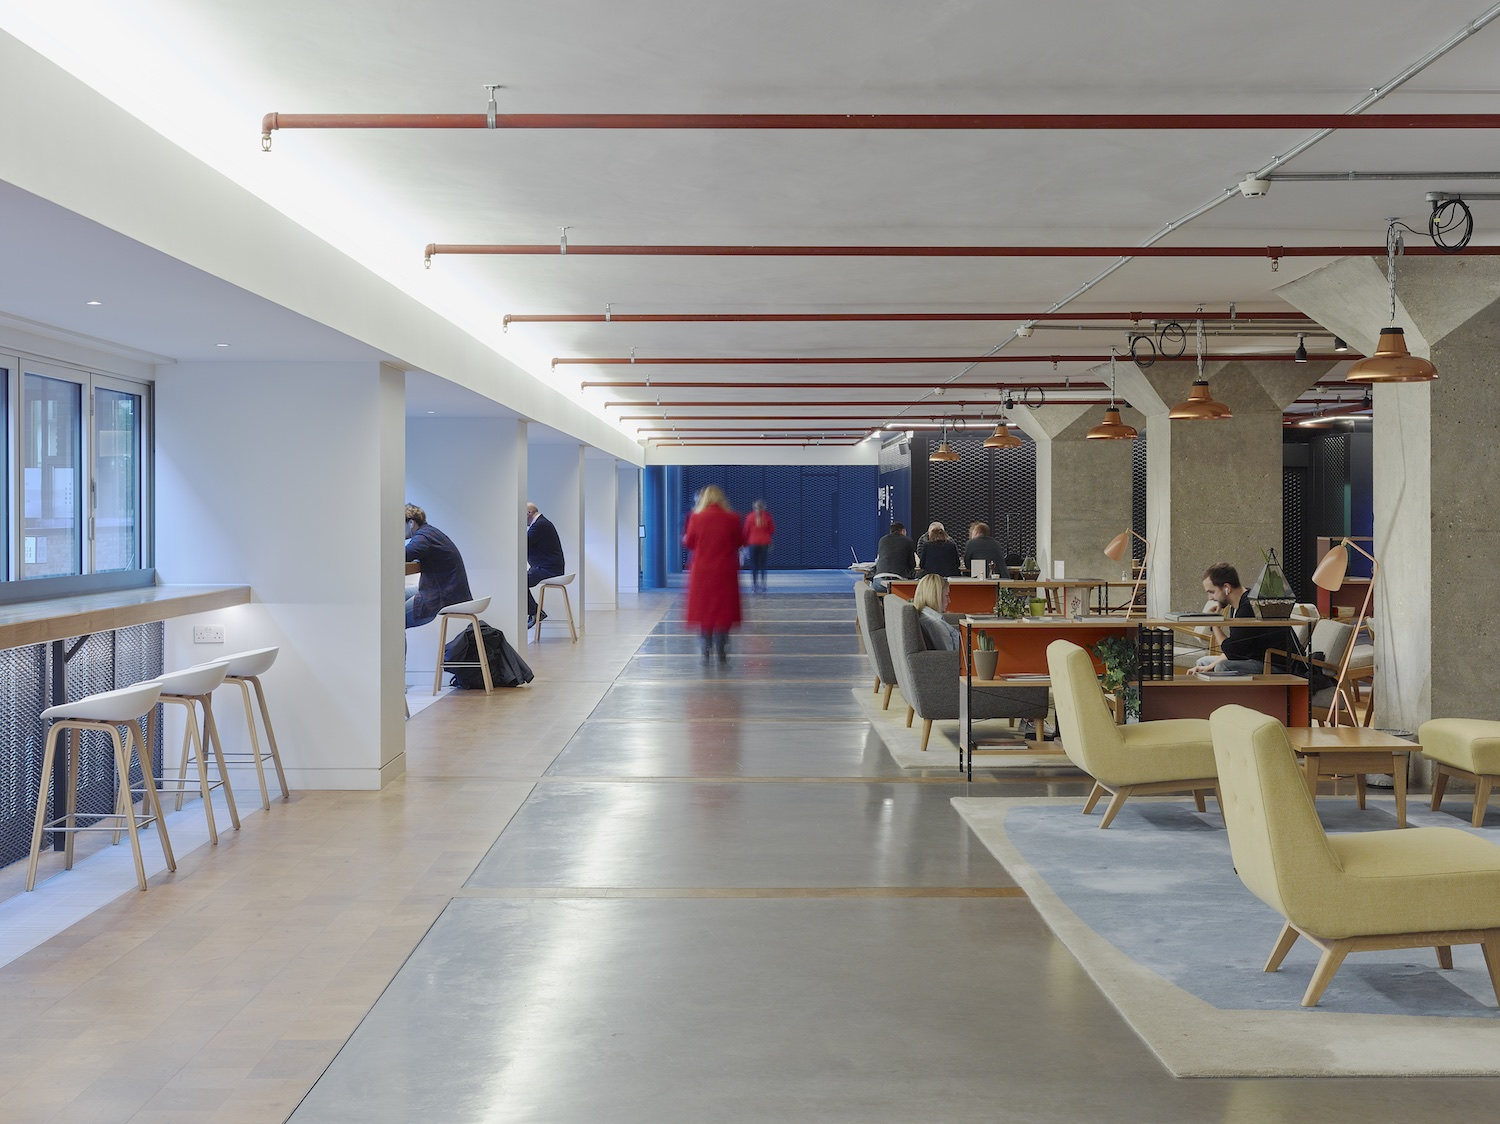 The columns are a reminder of a more cellular approach to office space (photo: Tim Soar)